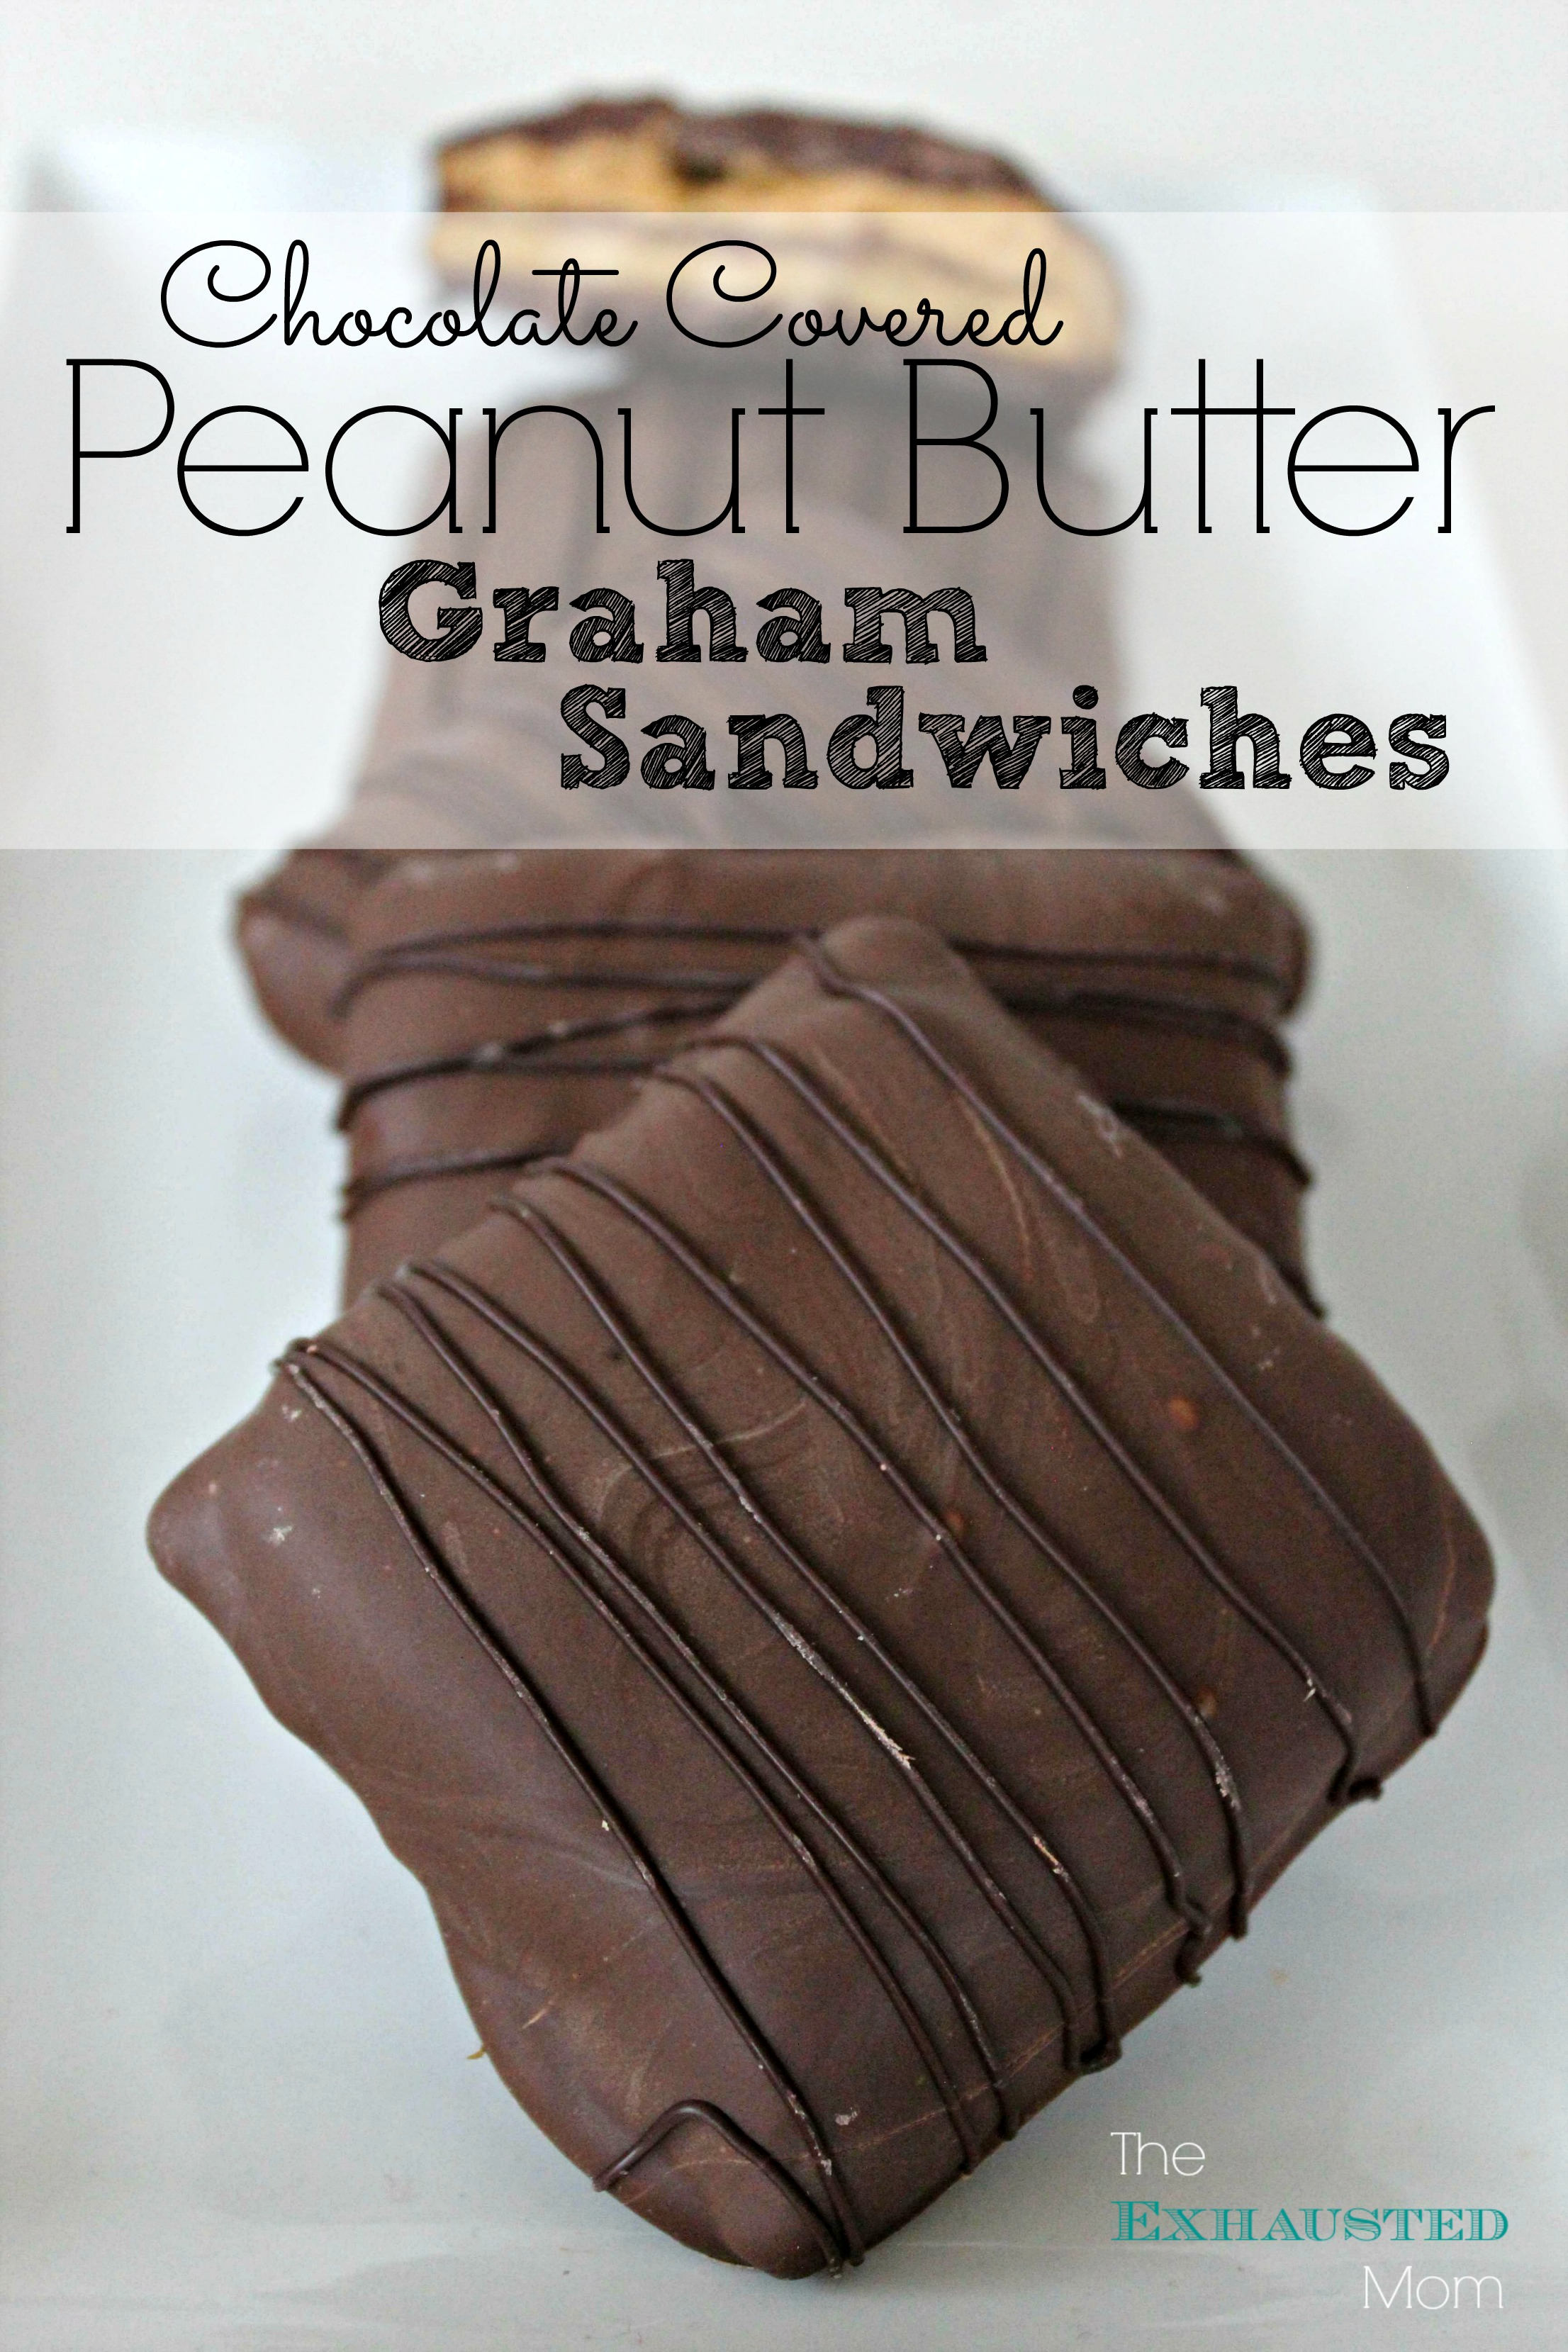 Chocolate Covered Peanut Butter Graham Sandwiches